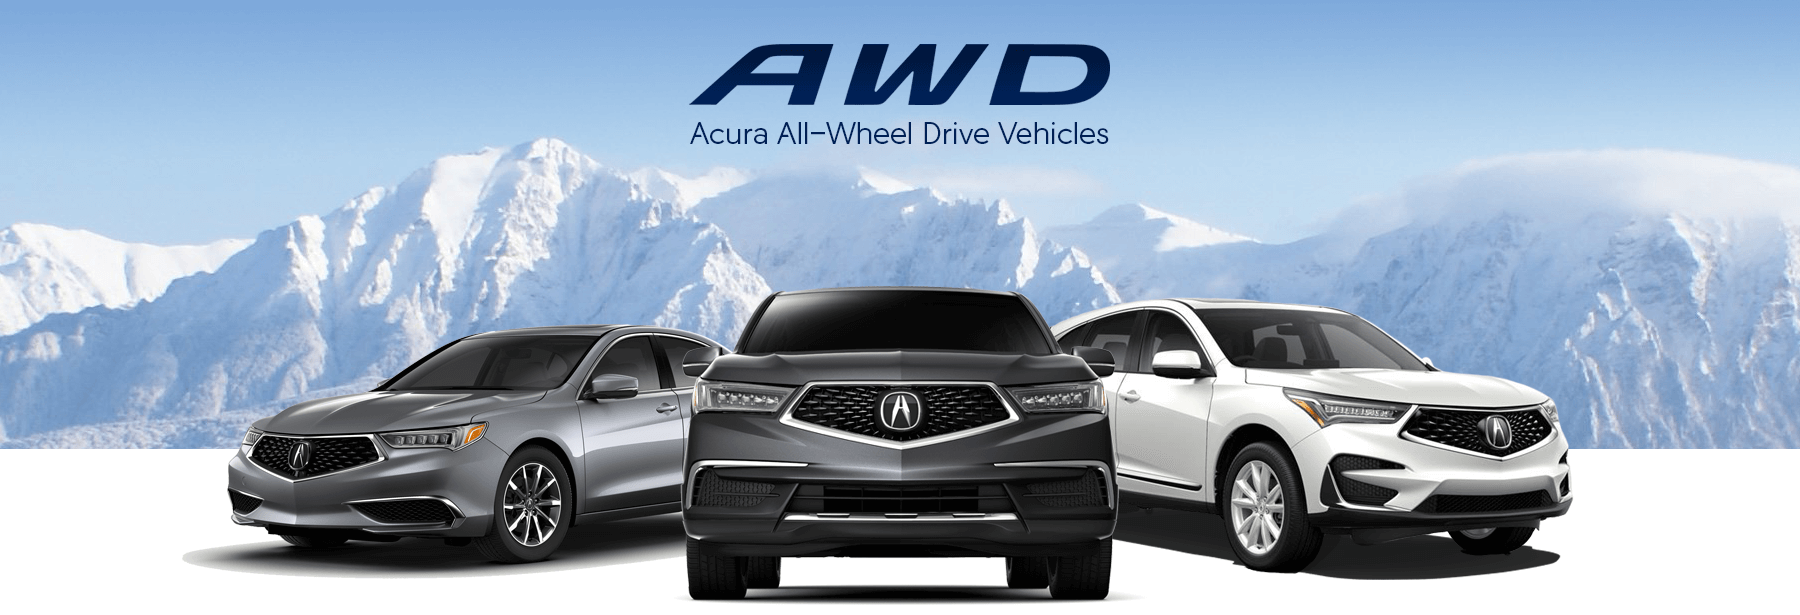 Acura All-Wheel Drive Slider